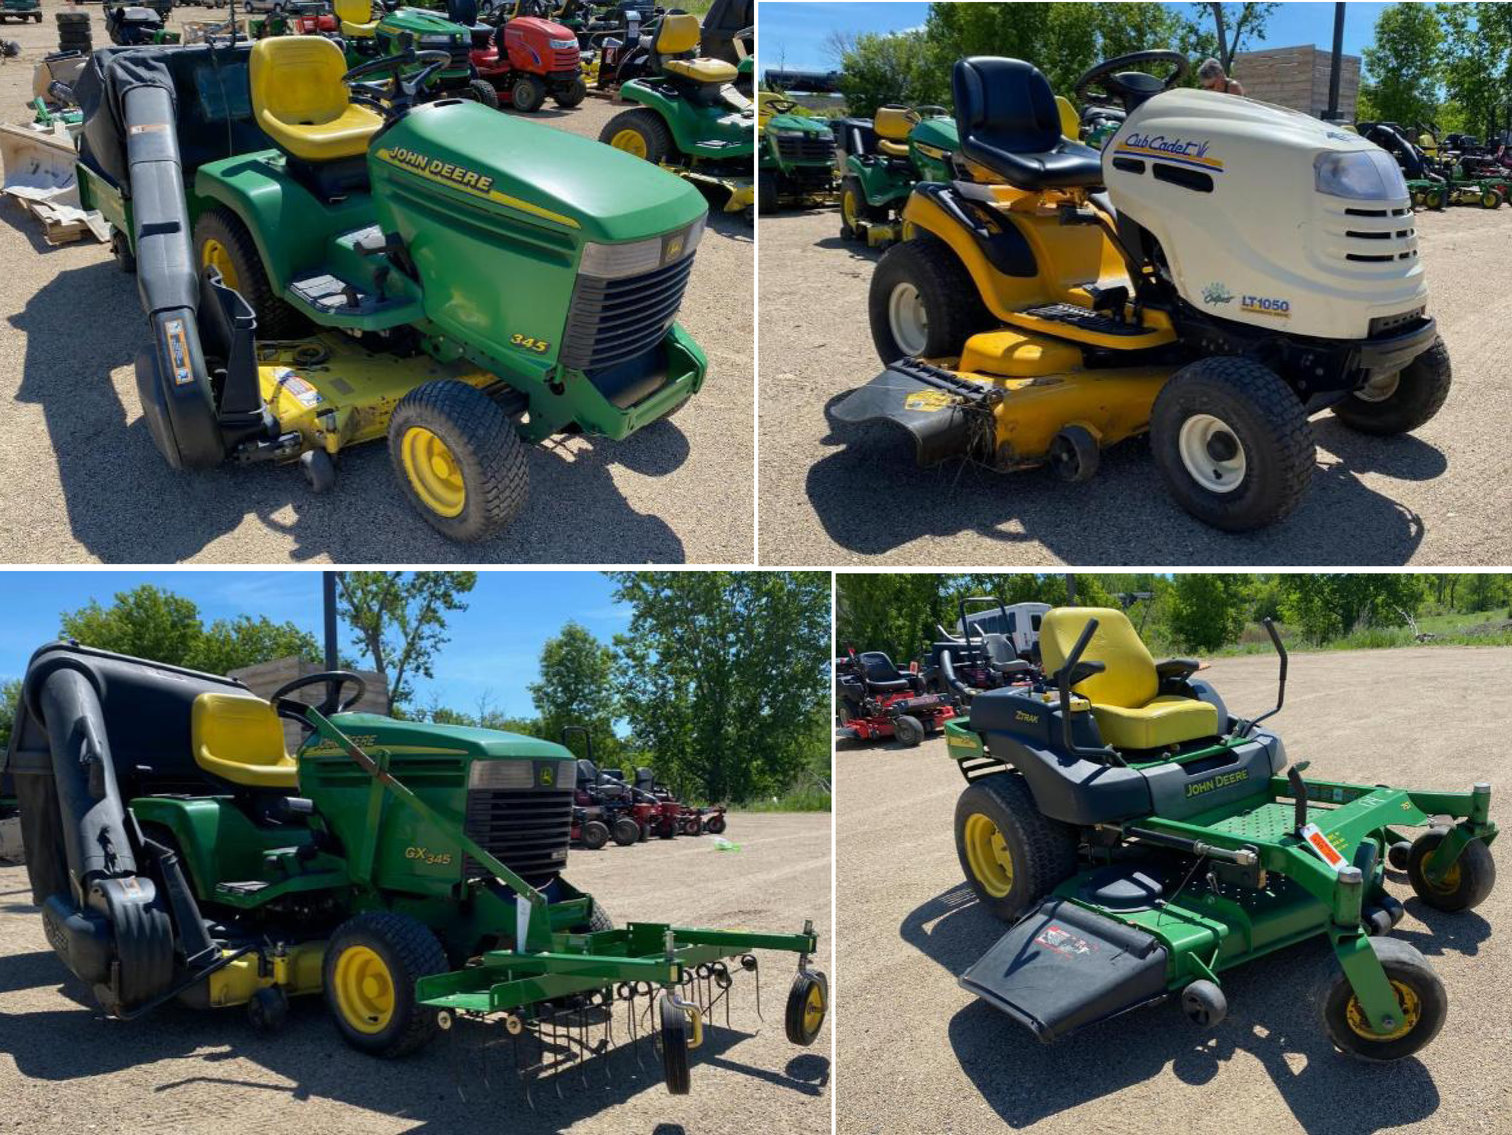 Northwoods Auction Co. Lawn Mower & Equipment Auction